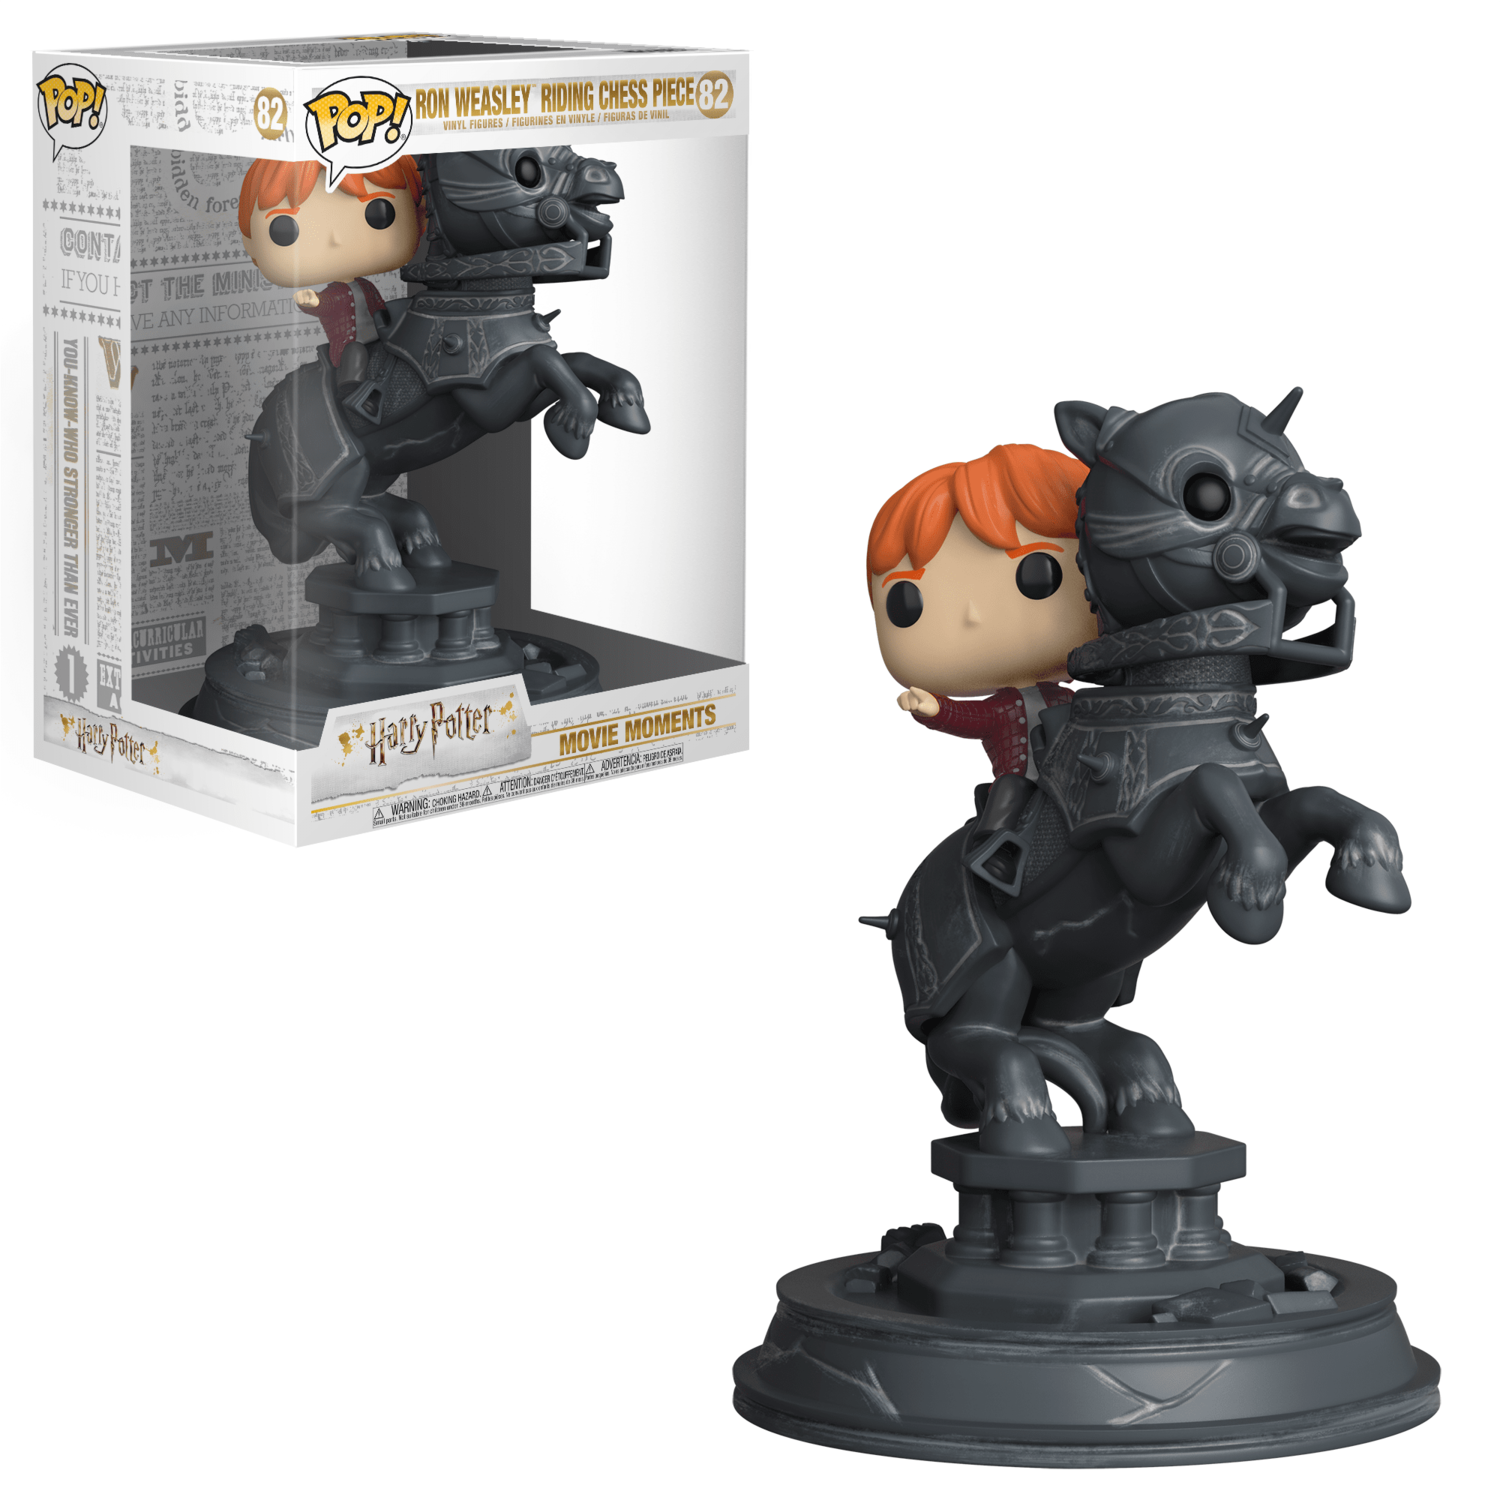 POP Funko - Harry Potter - Ron Weasley riding chess piece